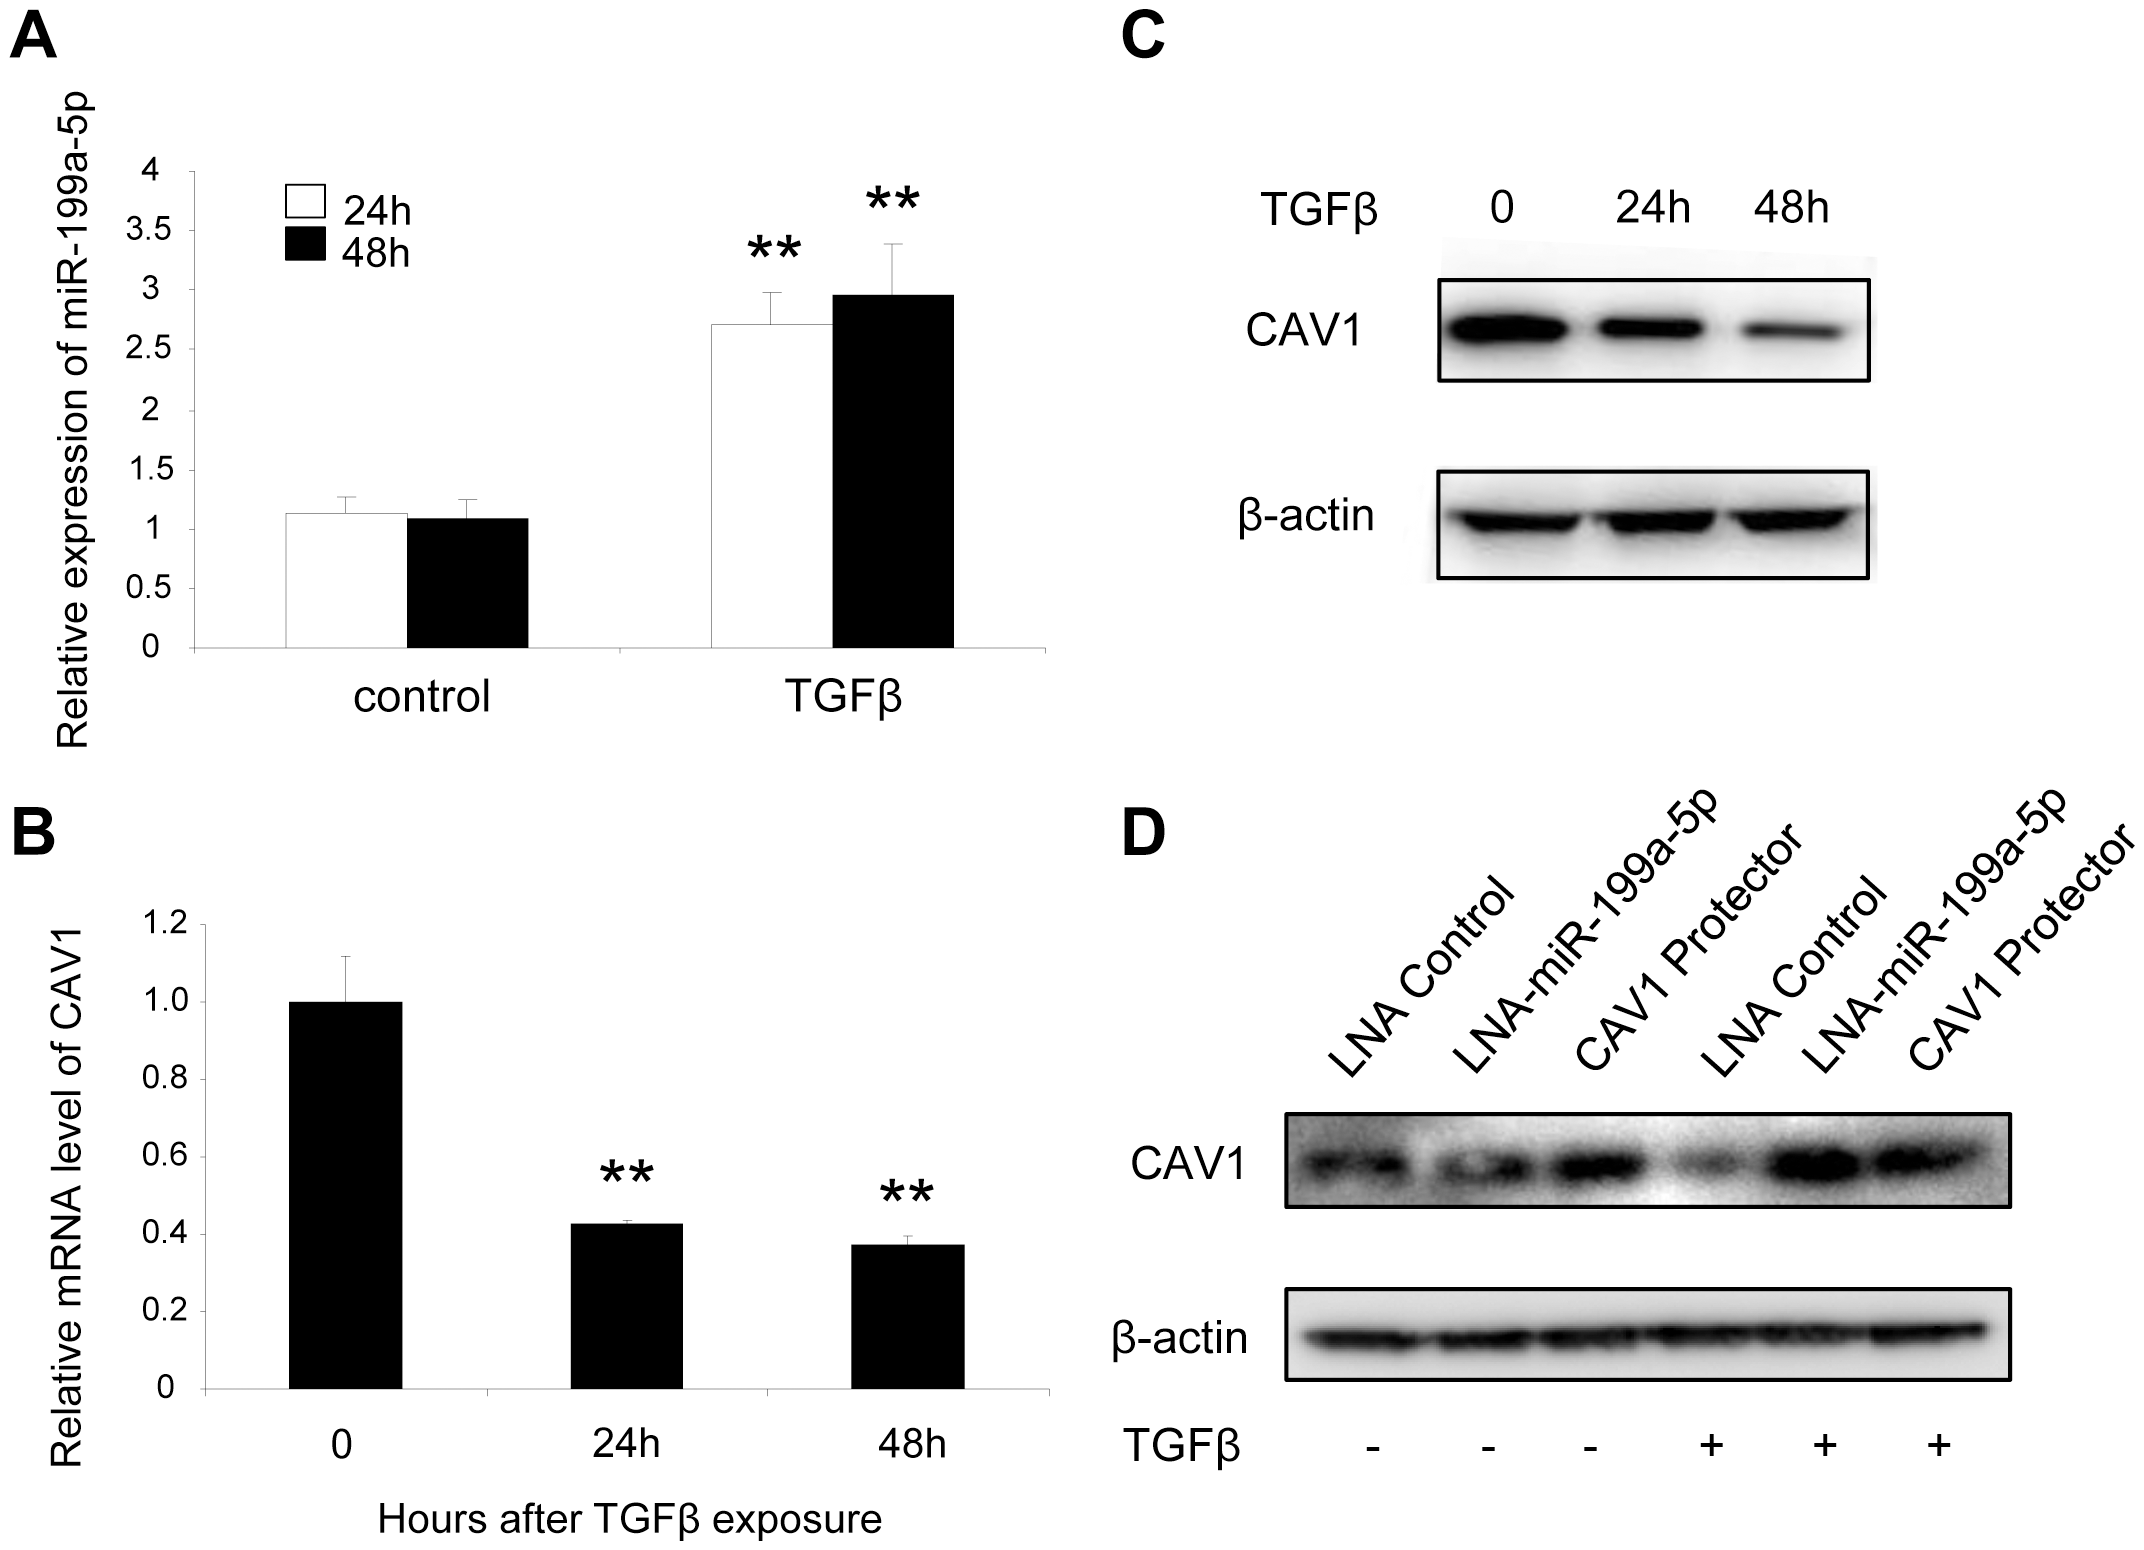 TGFβ regulates CAV1 by increasing miR-199a-5p expression.